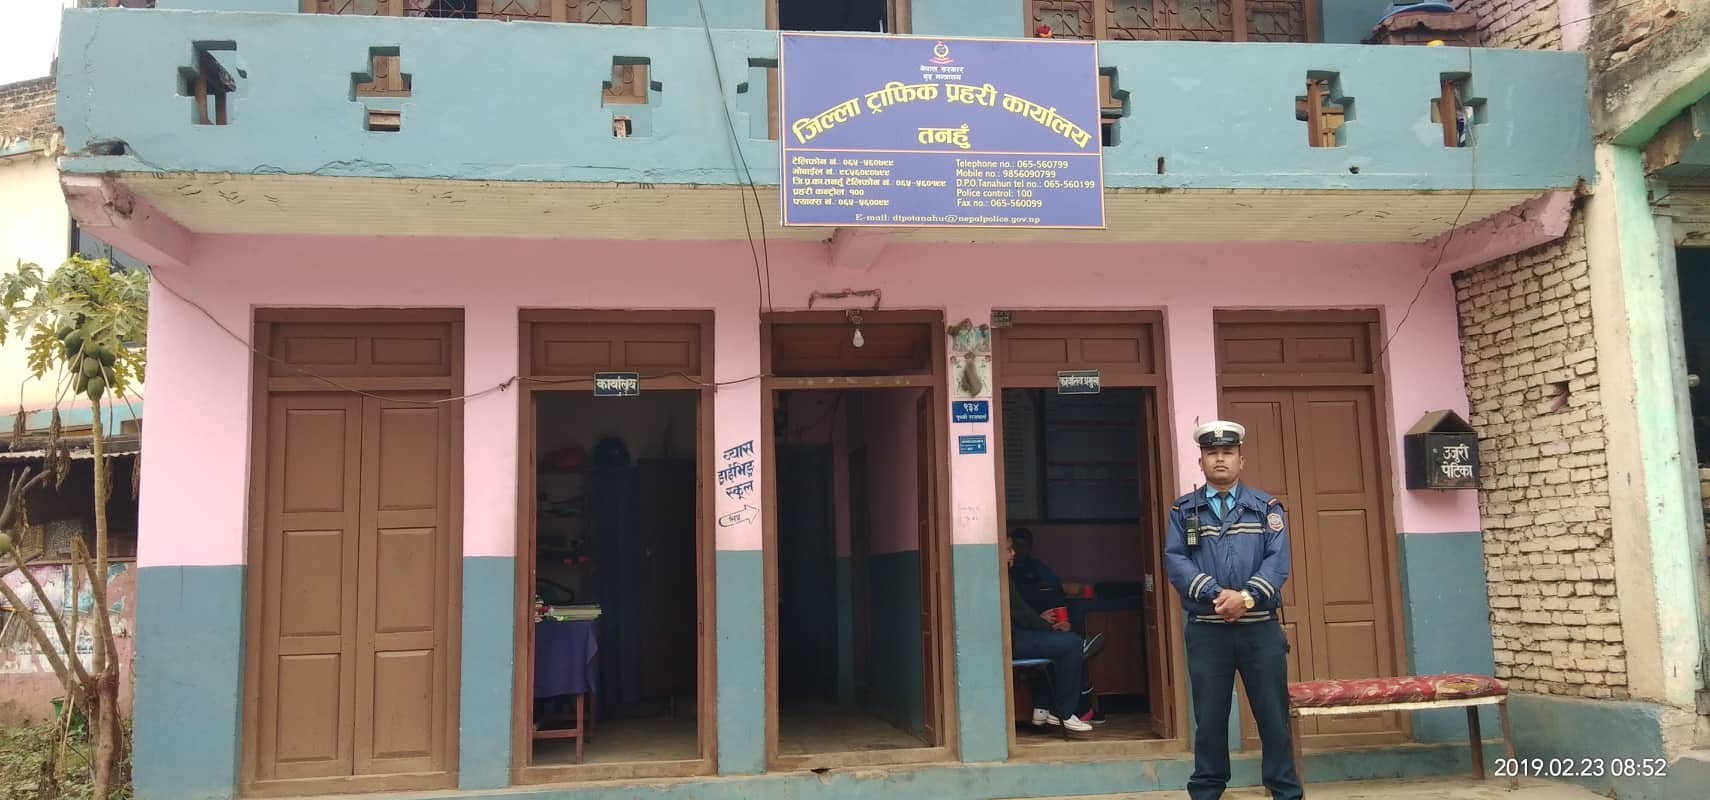 dtpolicce tanahu